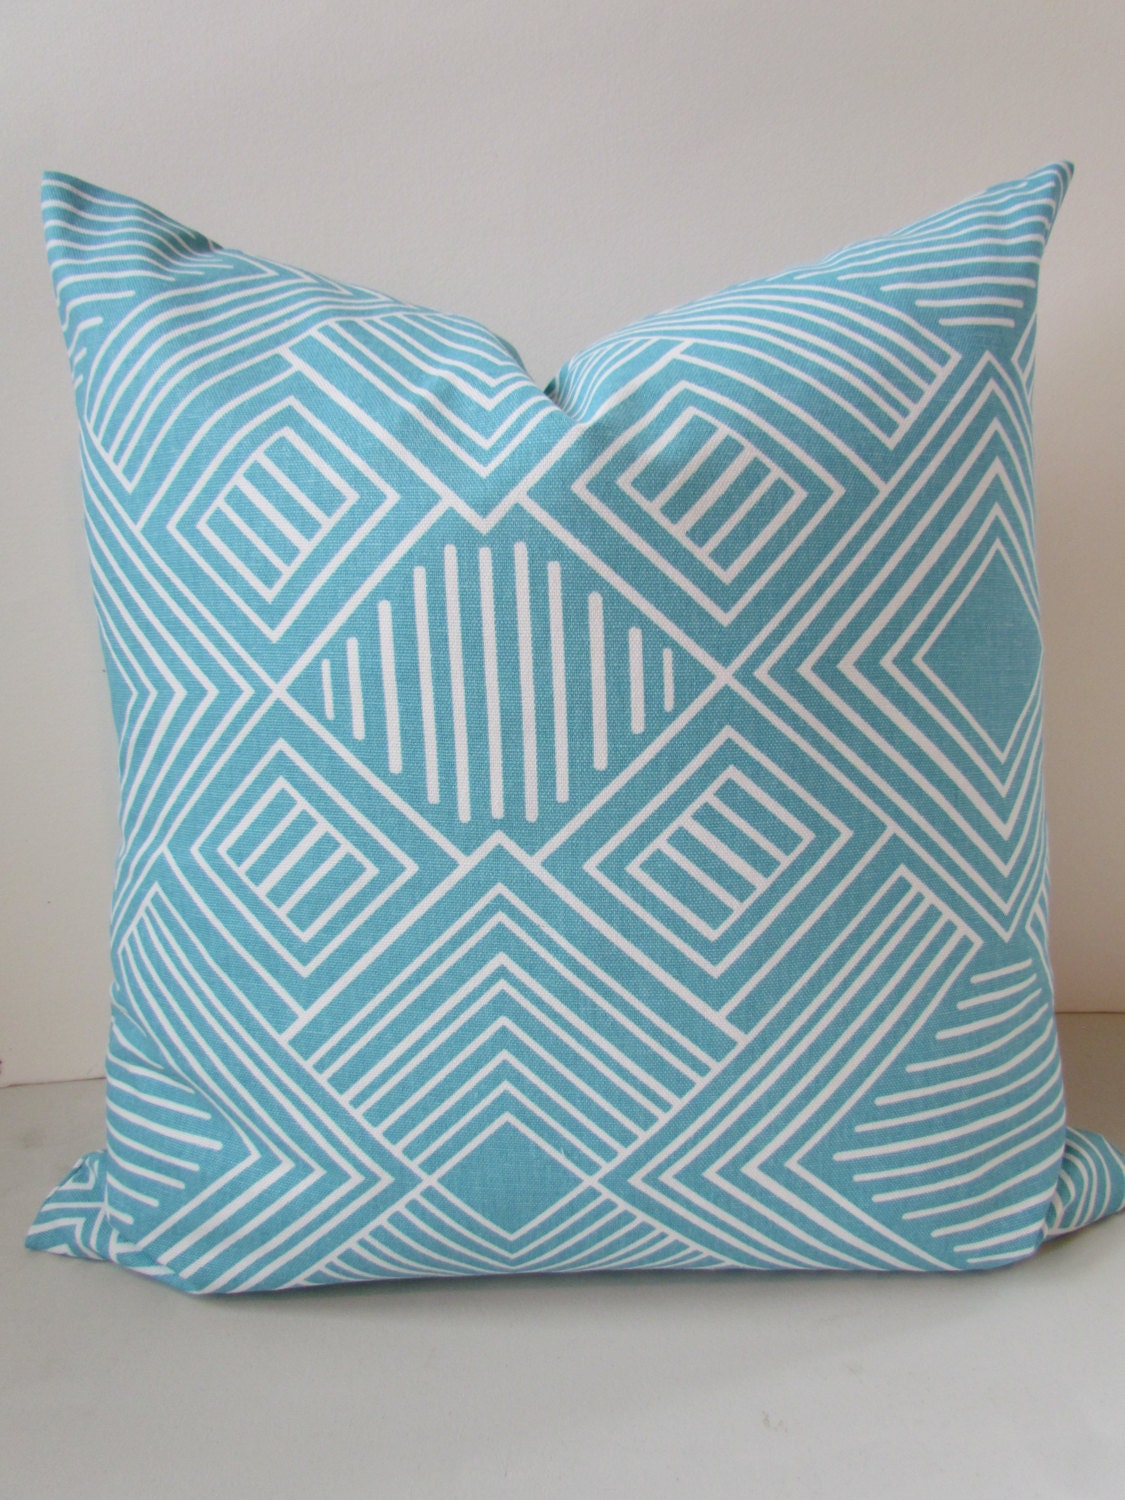 Turquoise Throw Pillows Covers : Turquoise PILLOW Covers Turqouise Throw Pillows Aqua Blue